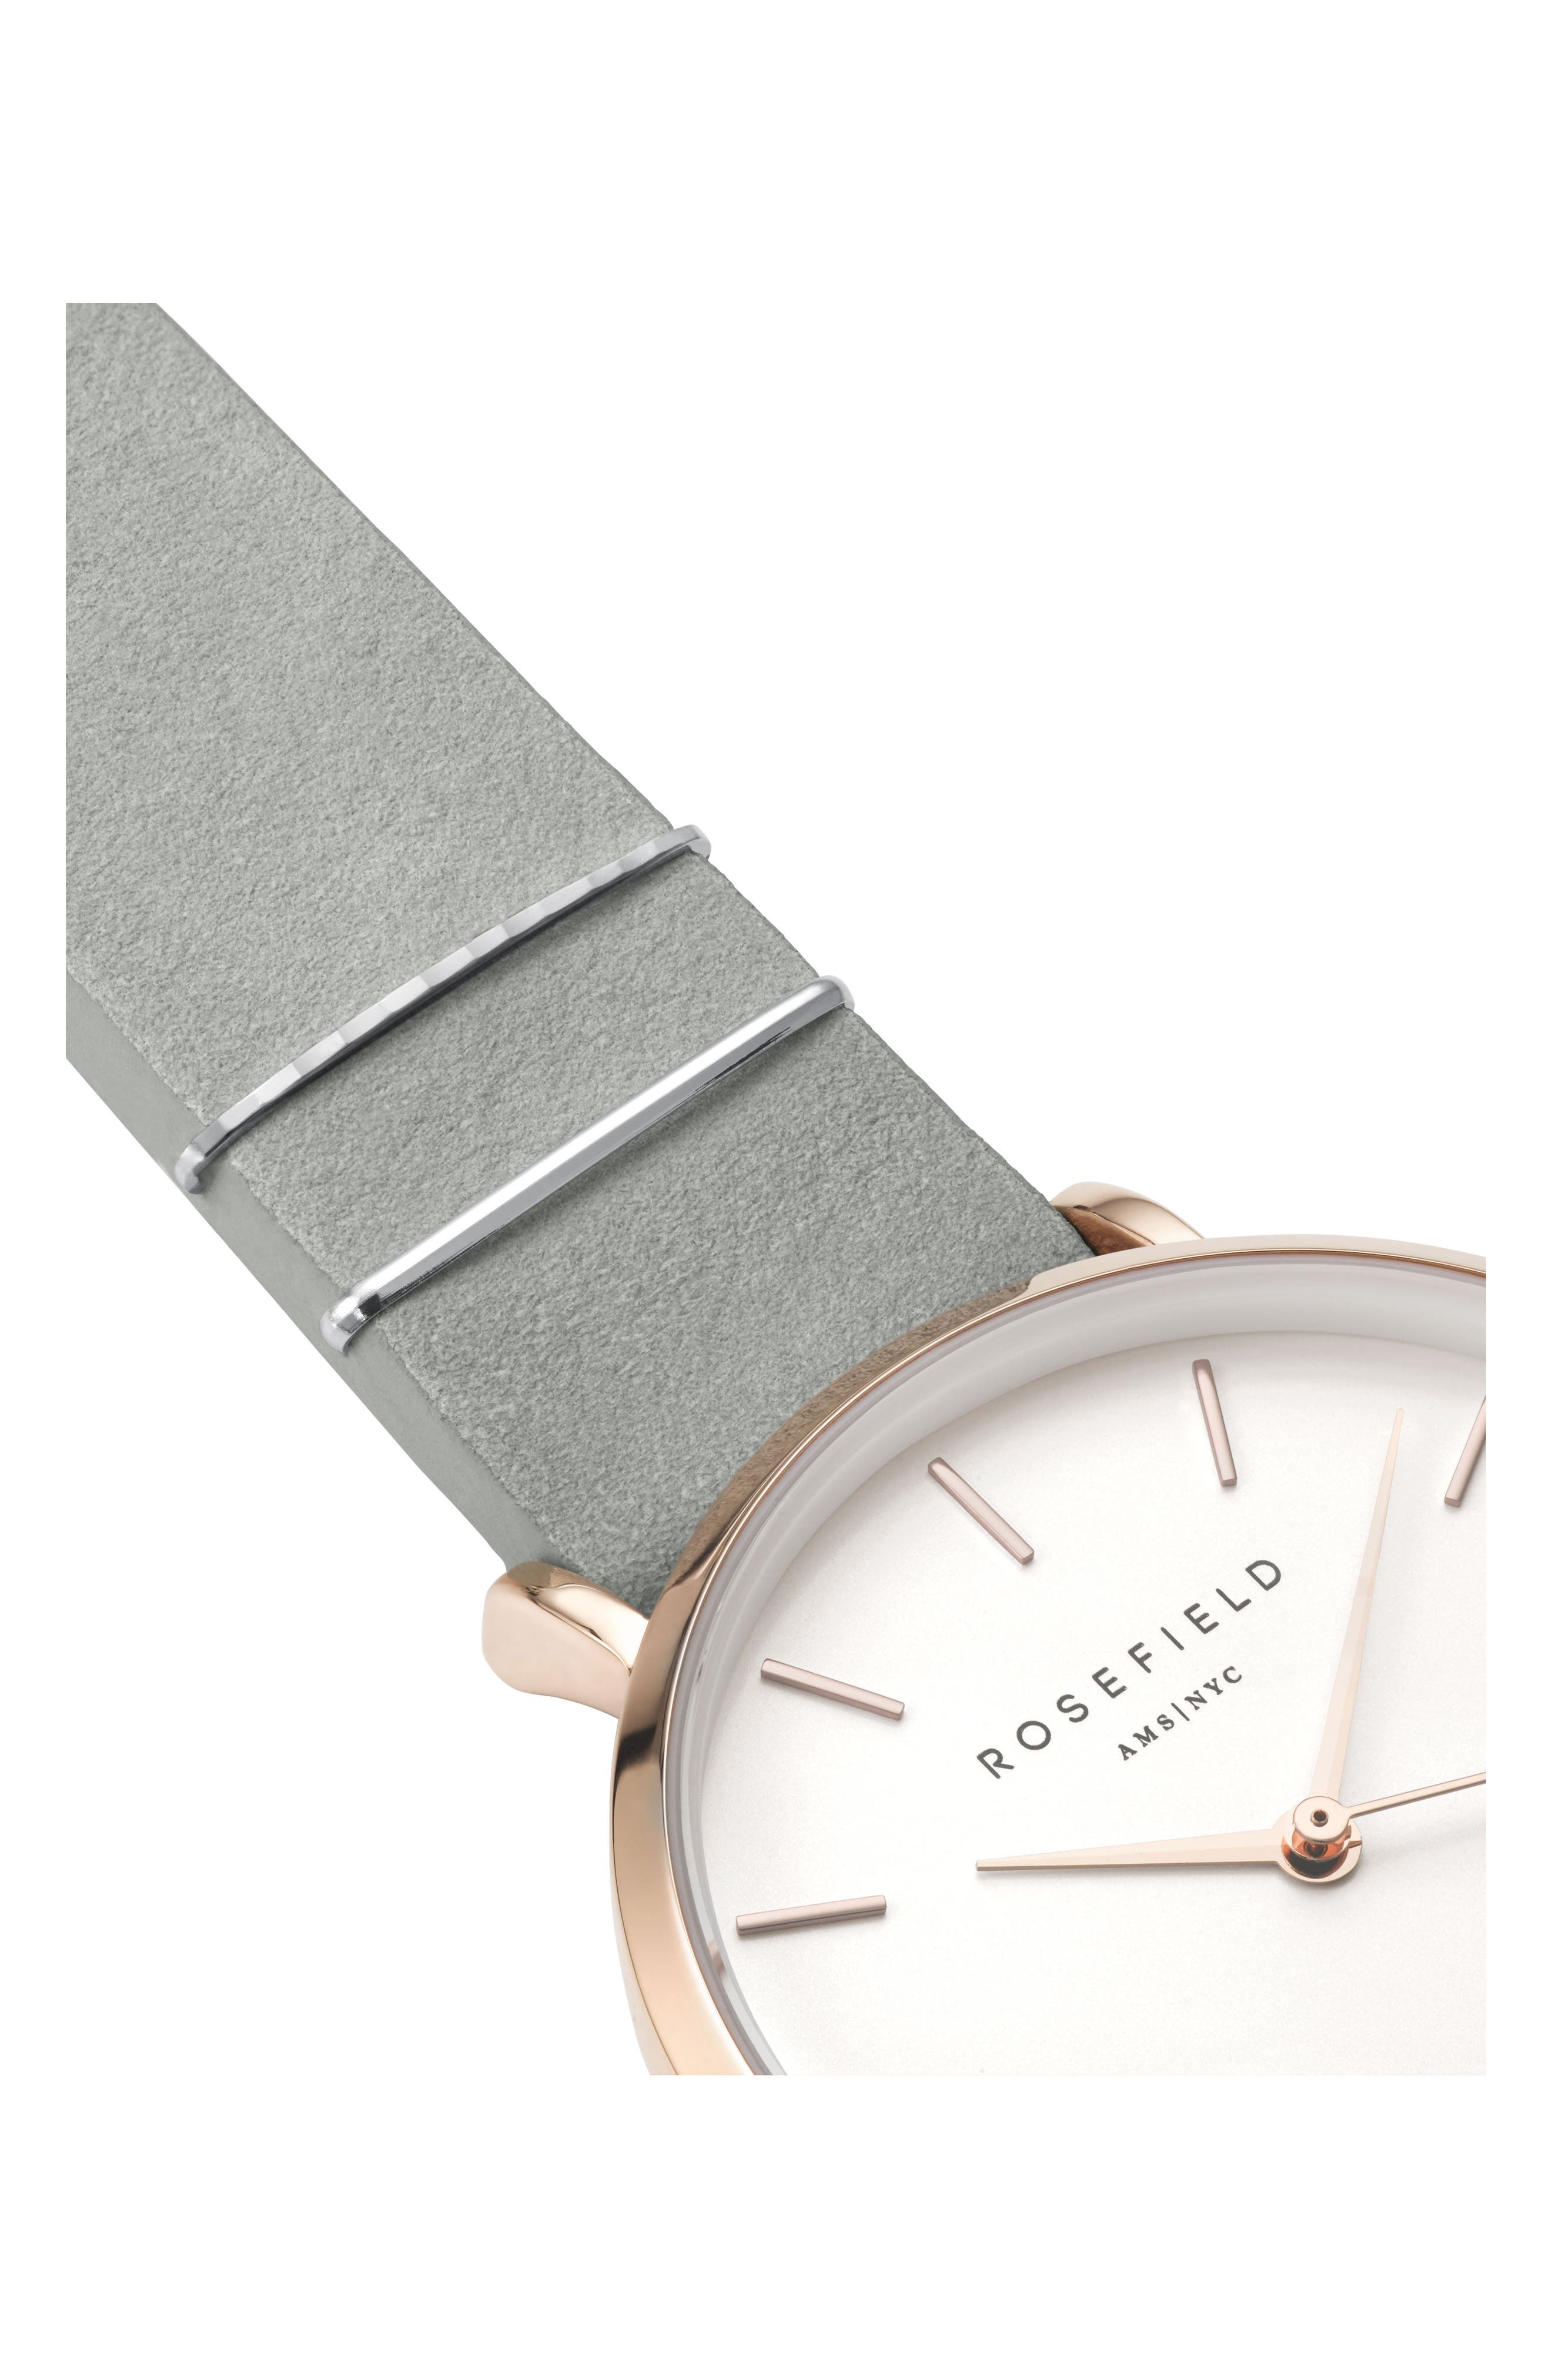 West Village Leather Strap Watch, 33mm,                             Alternate thumbnail 3, color,                             MINT GREY/ WHITE/ ROSE GOLD